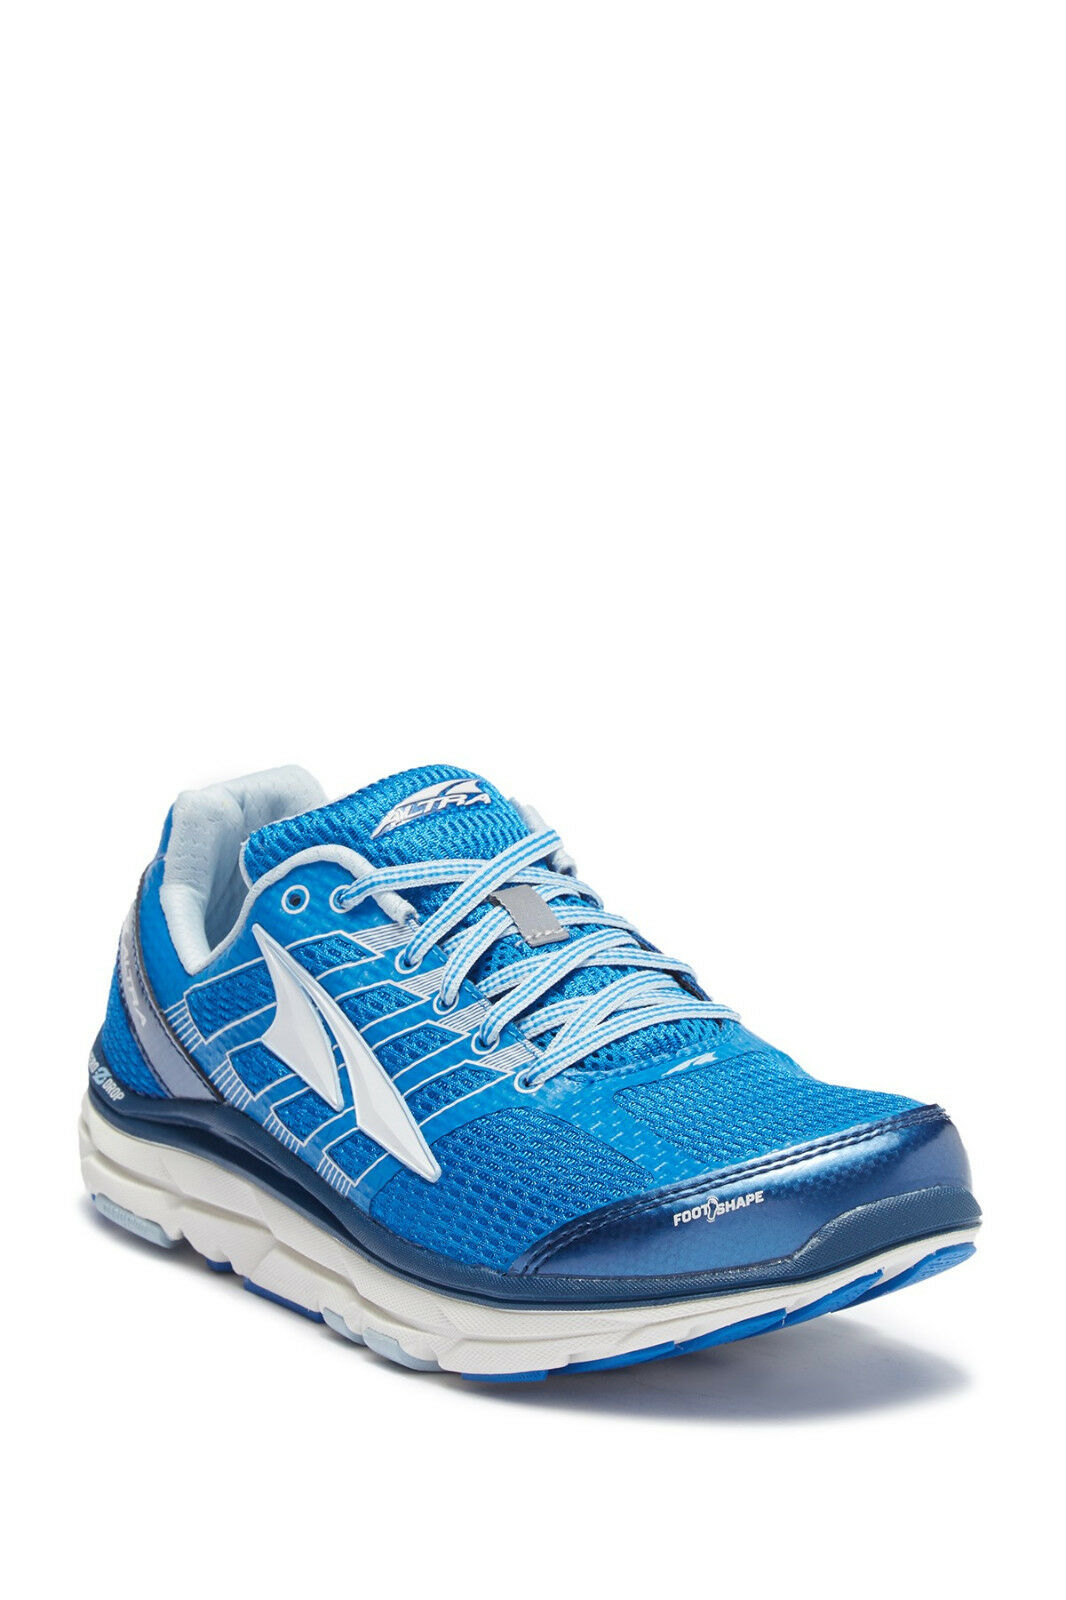 Altra Provision 3.0 Running Shoes, Men's Sizes 11-11.5-12 D, Blue, NEW!